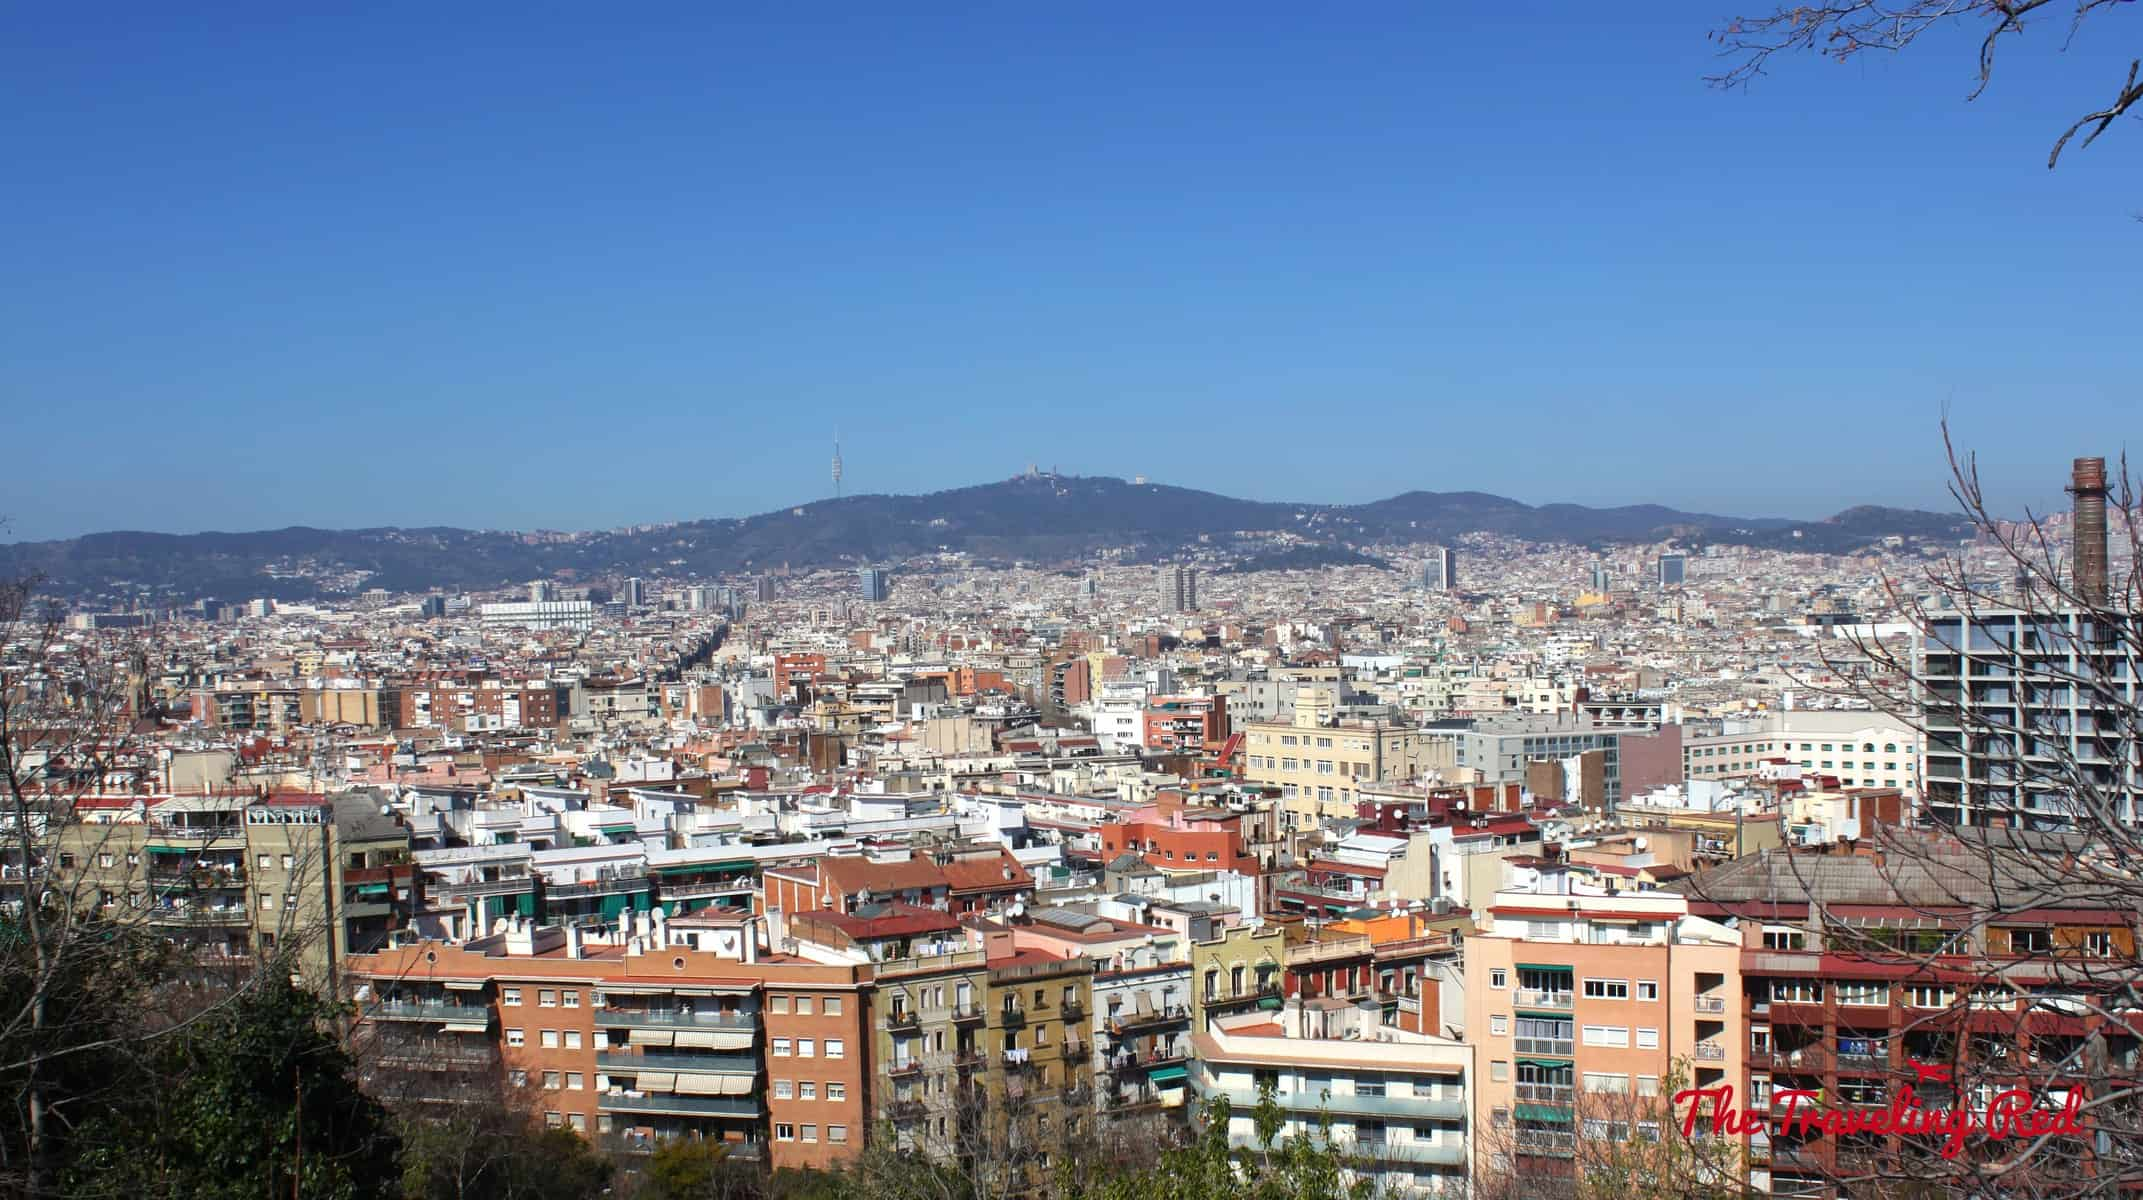 One of the best views of Barcelona, Spain is from Montjuic. Itis known for its sweeping panoramic views of the city.